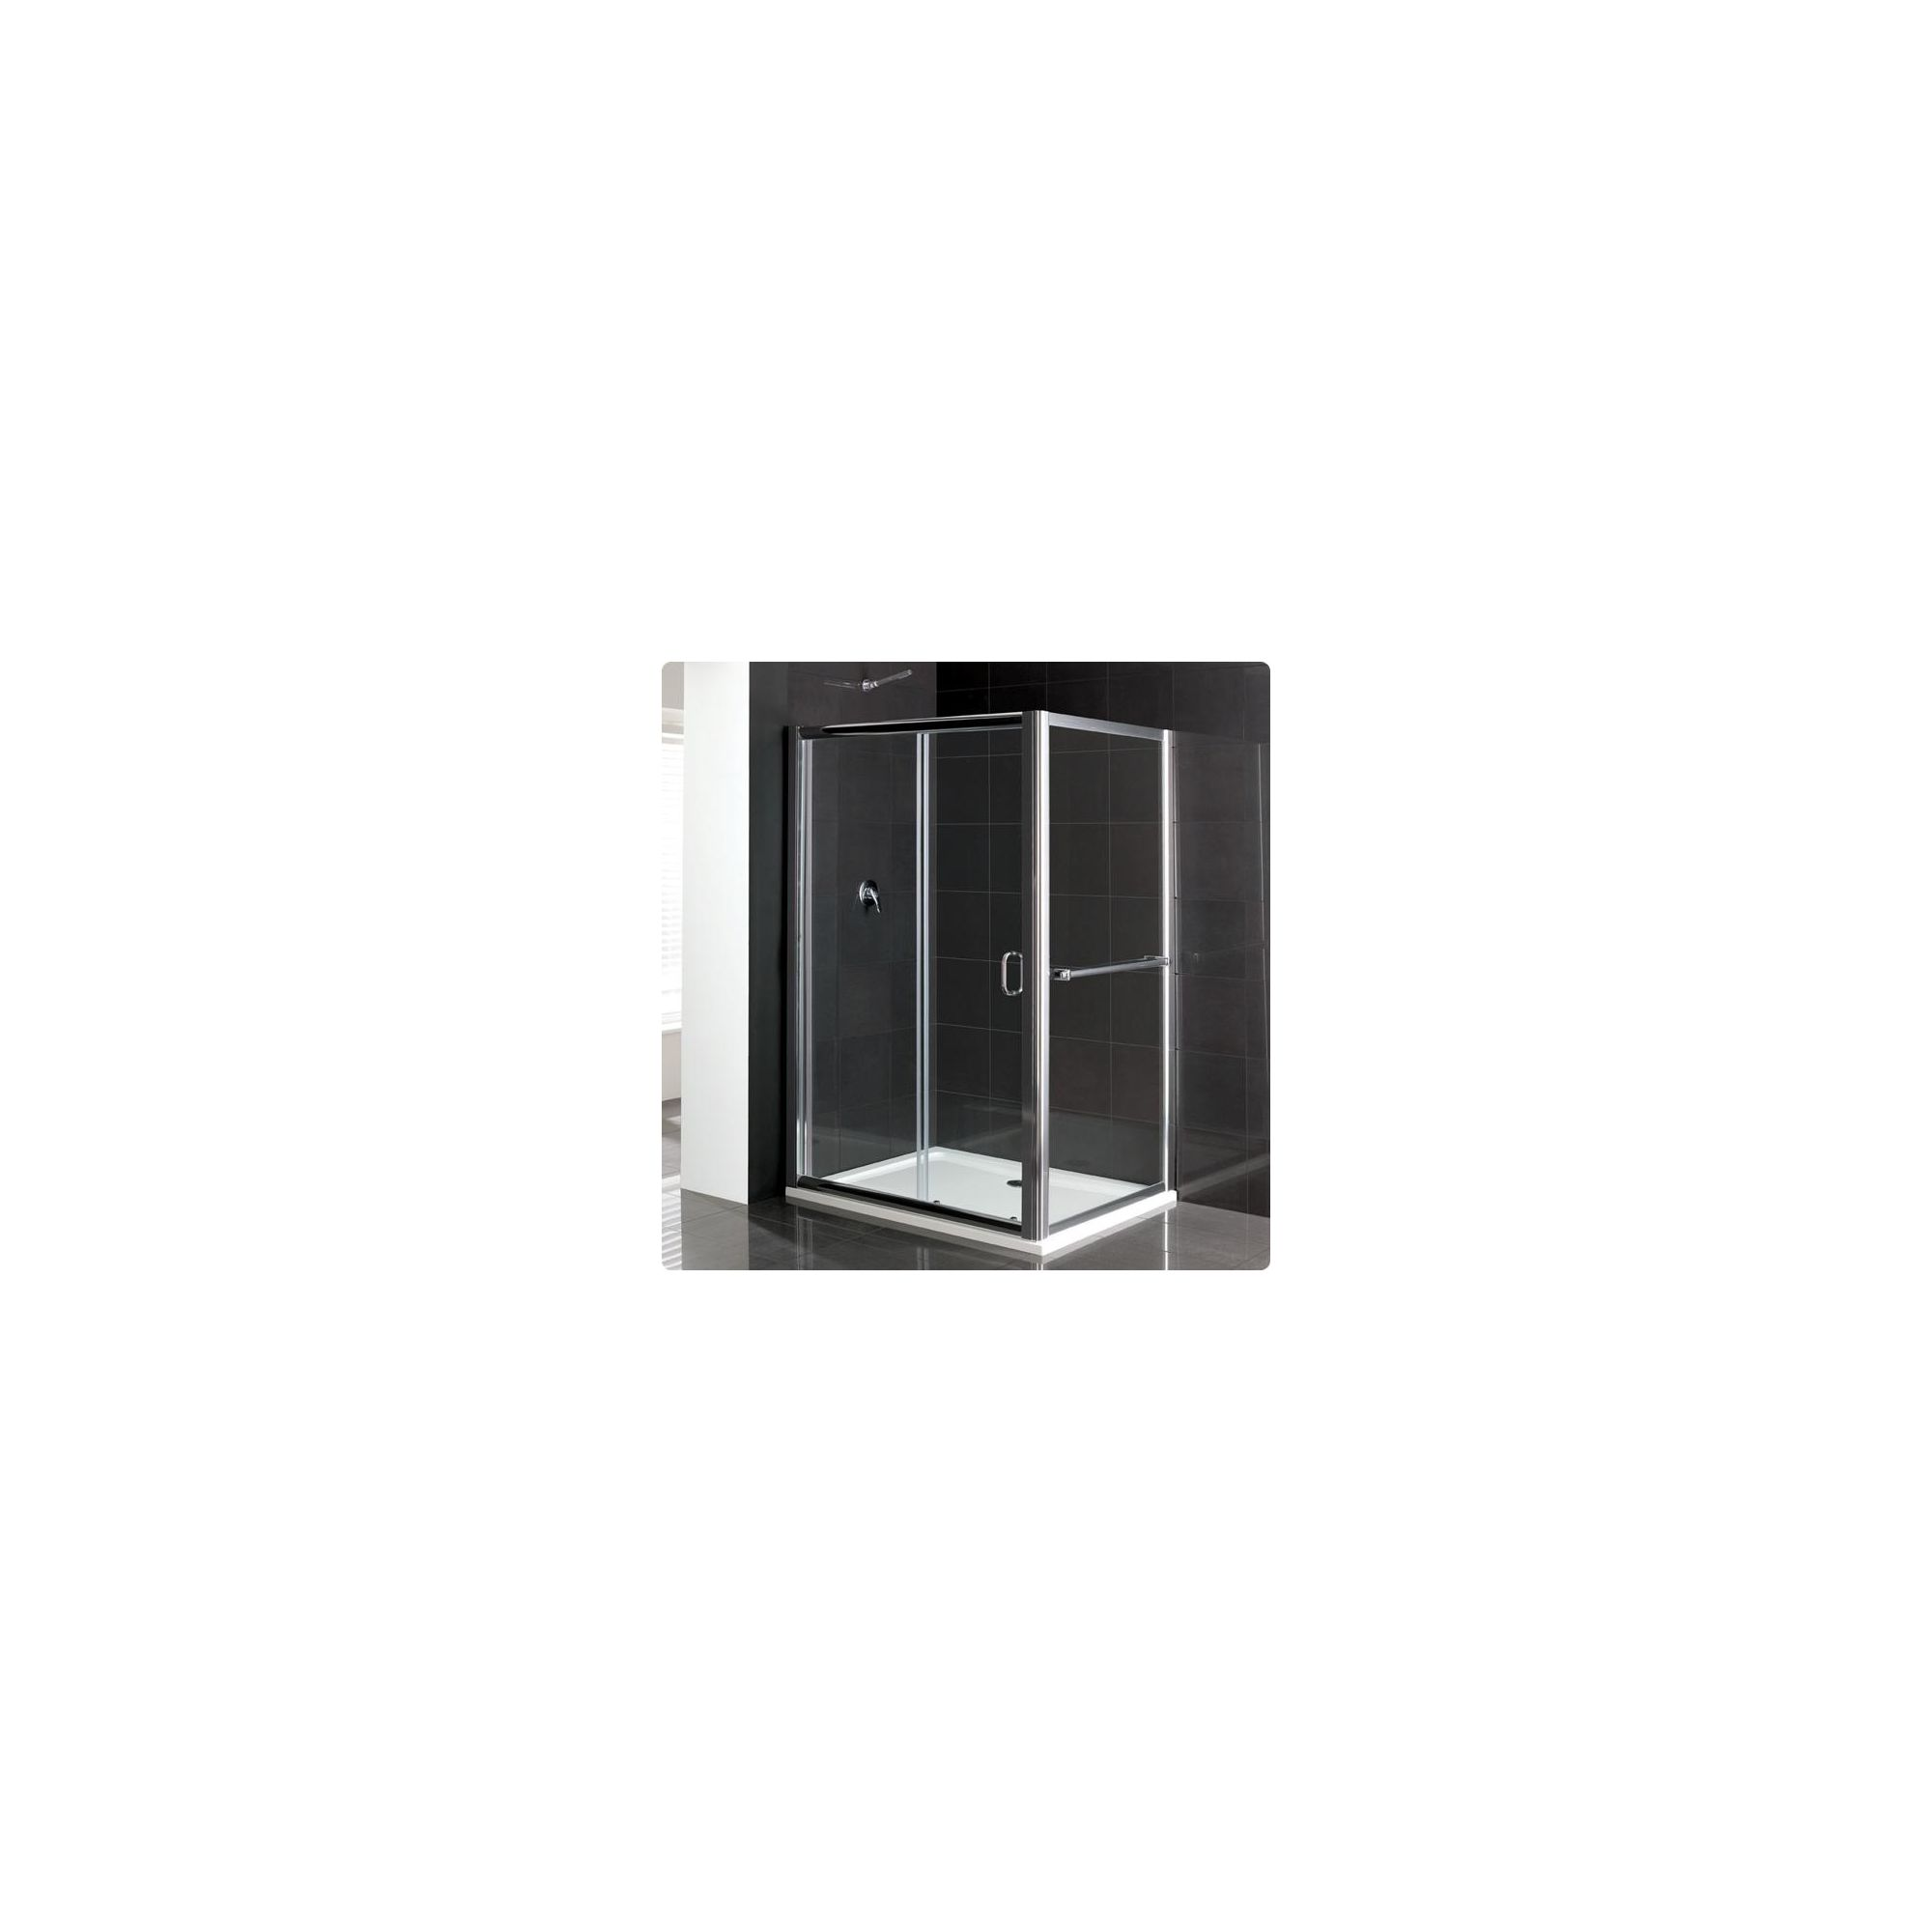 Duchy Elite Silver Sliding Door Shower Enclosure with Towel Rail, 1600mm x 900mm, Standard Tray, 6mm Glass at Tesco Direct